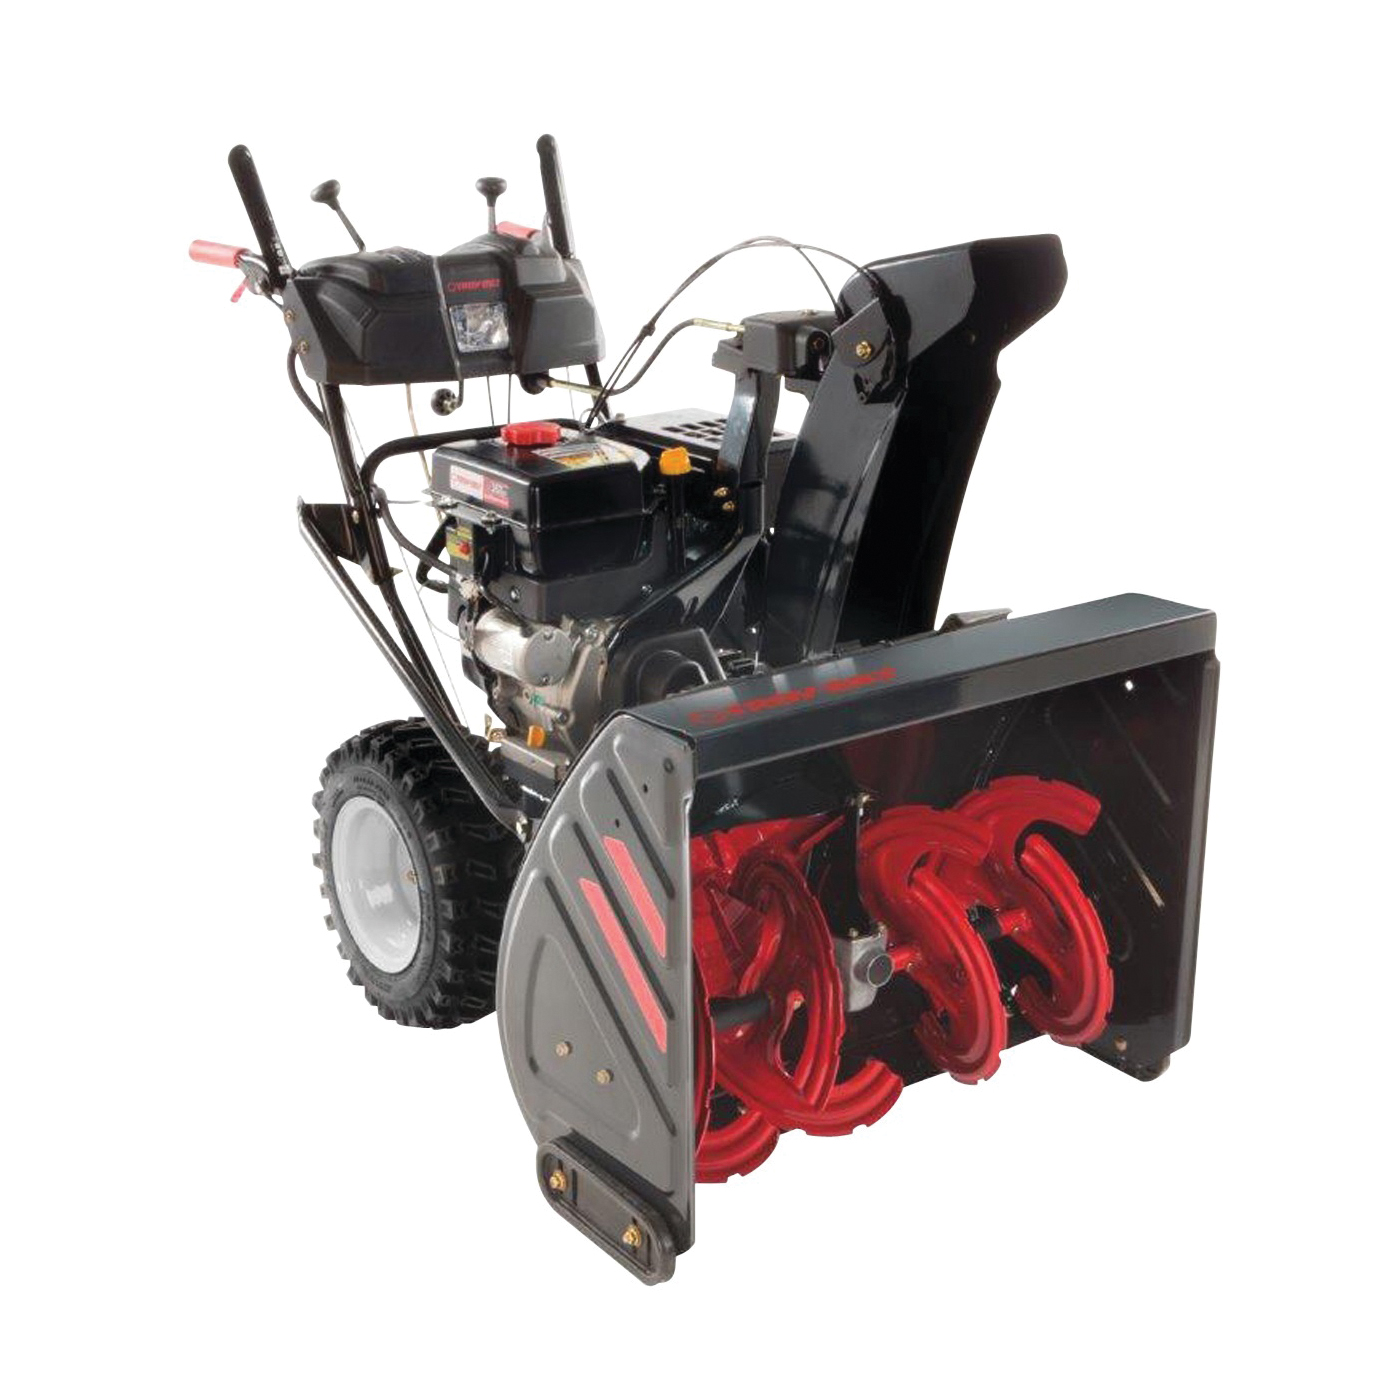 Picture of MTD 31AH8DR5766 Snow Thrower, 357 cc Engine Displacement, OHV Engine, 2 -Stage, Electric Start